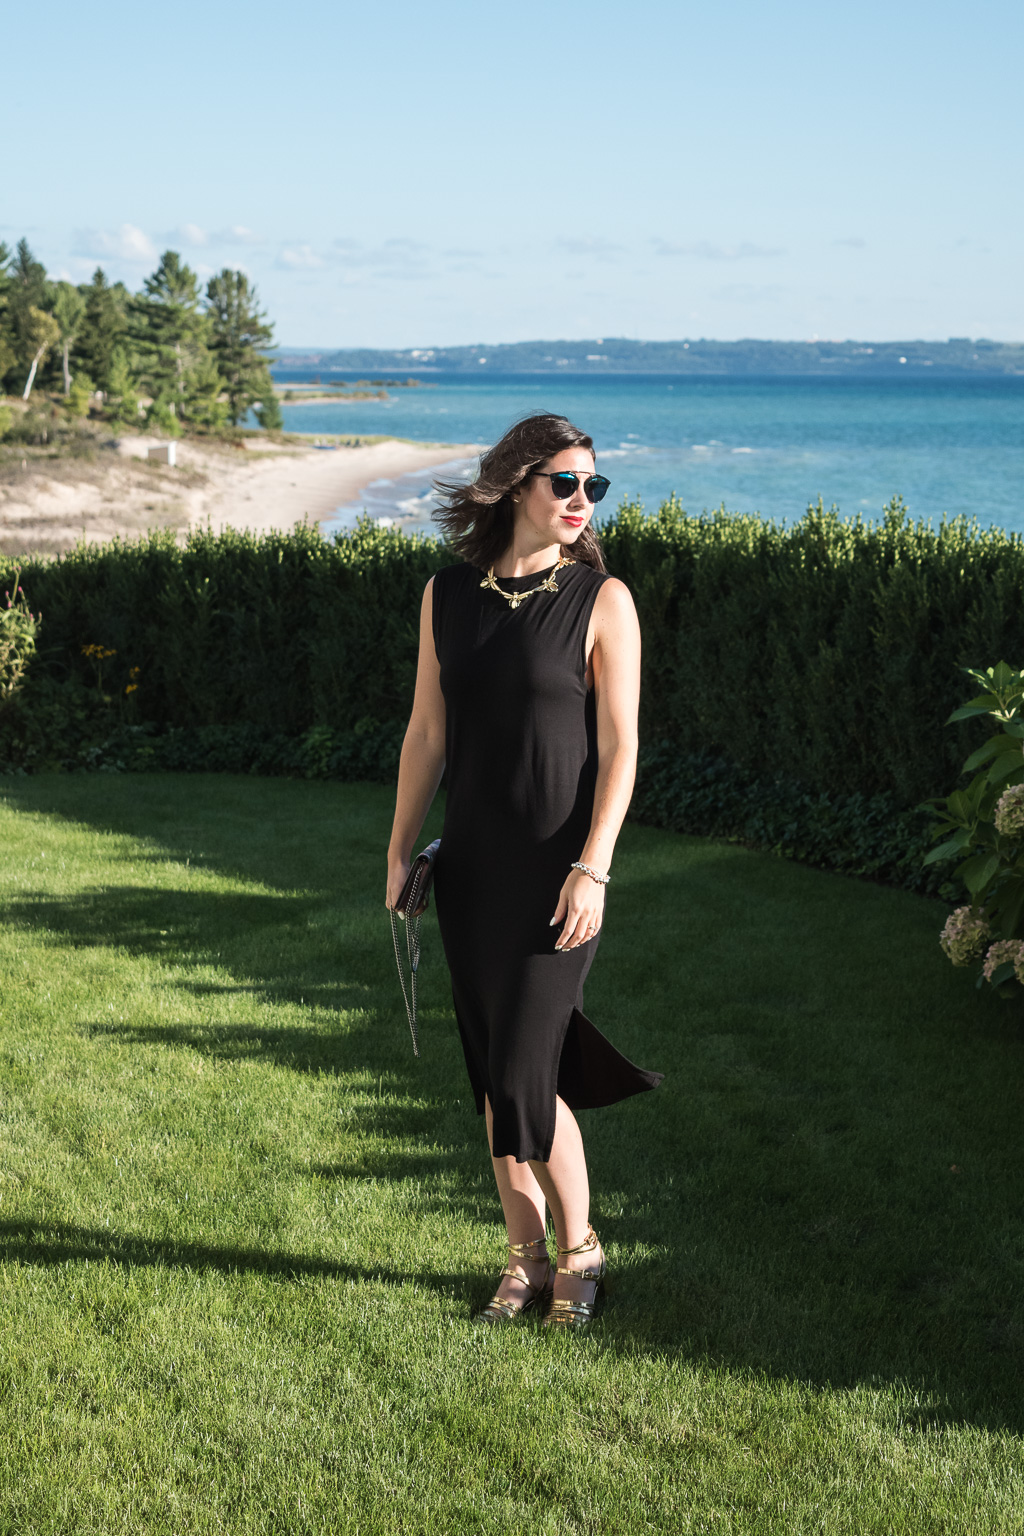 Lake House Getaway in Harbor Springs, Michigan   H&M Black Cotton Dress, Gucci GG Blooms Supreme Chain Wallet, Dior Black So Real Sunglasses, Zara Gold Heeled Sandals